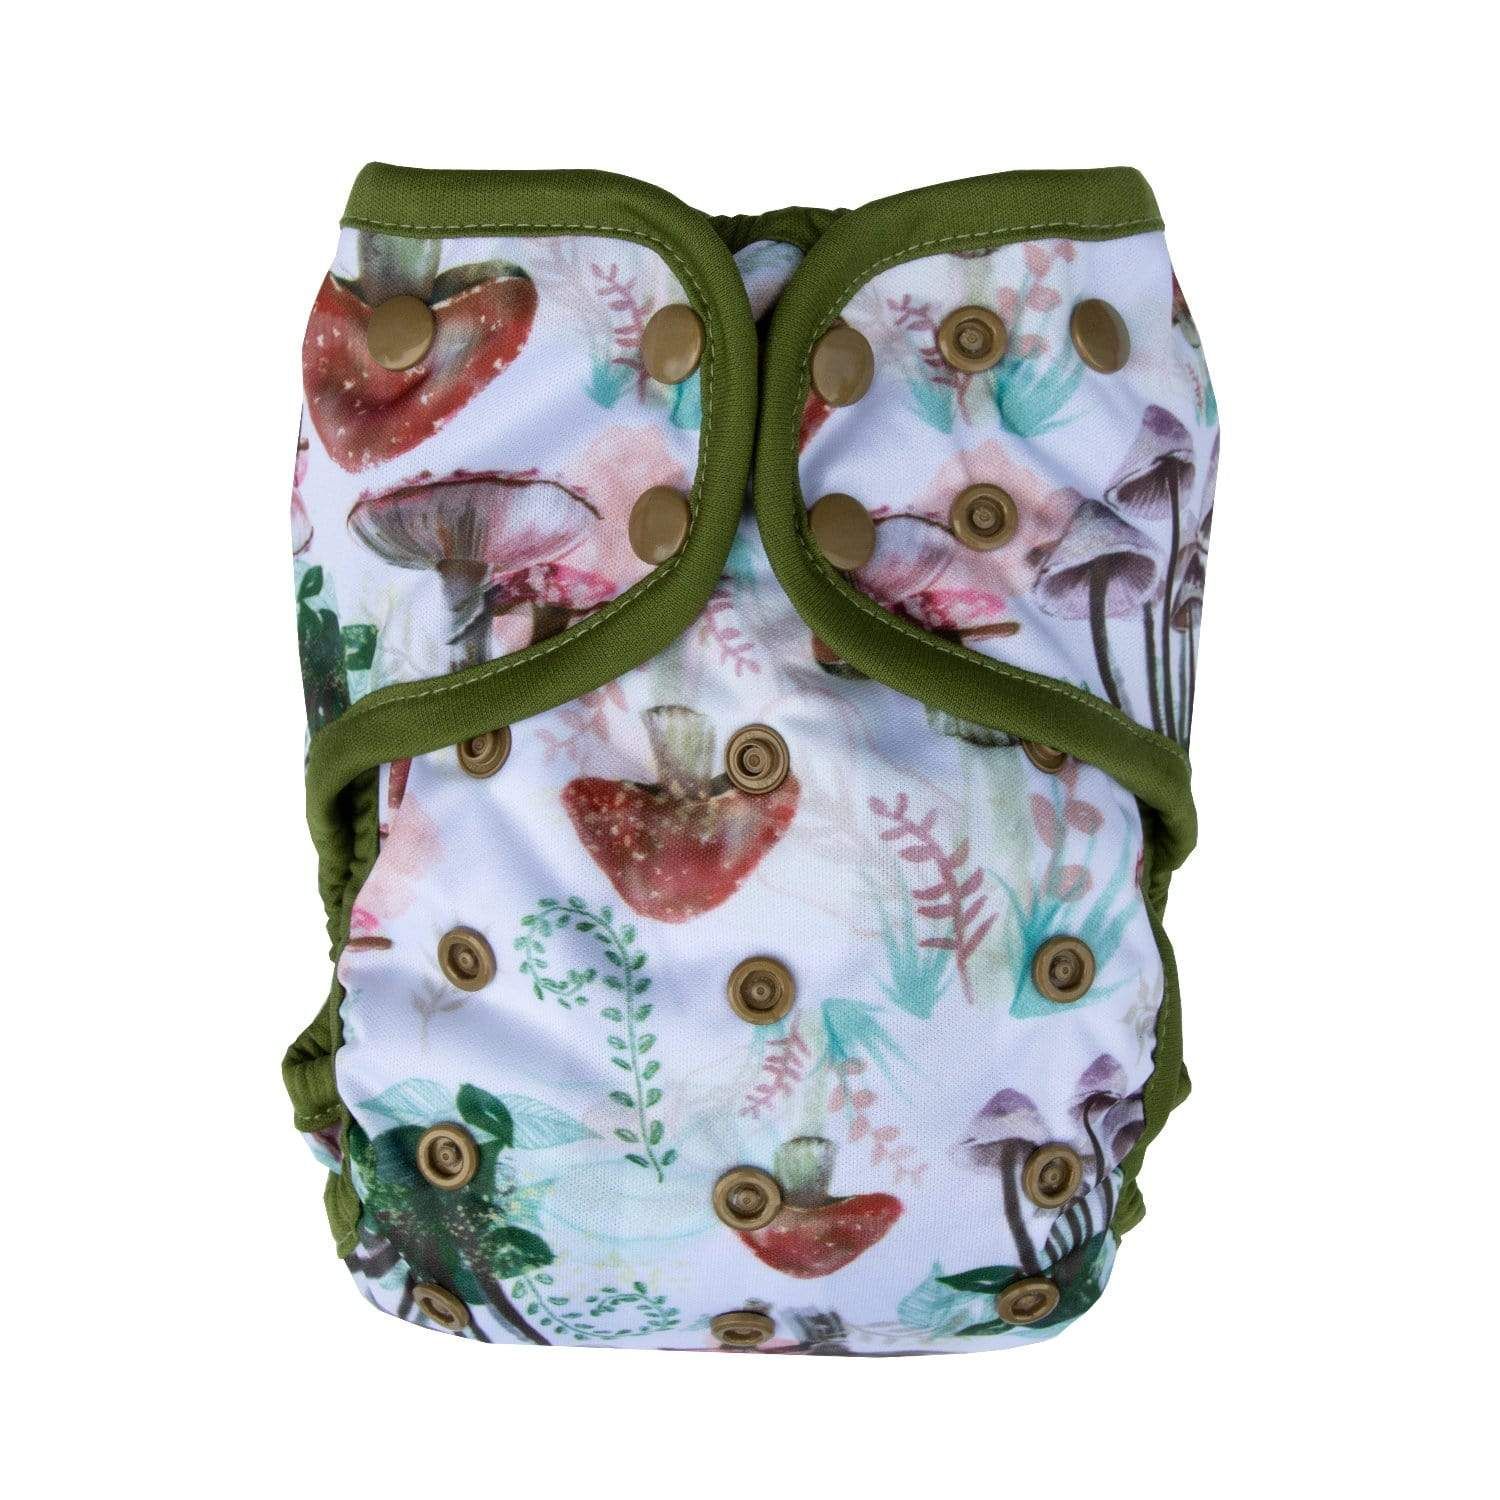 Lighthouse Kid's Company Diaper Cover & Insert - Toadstool